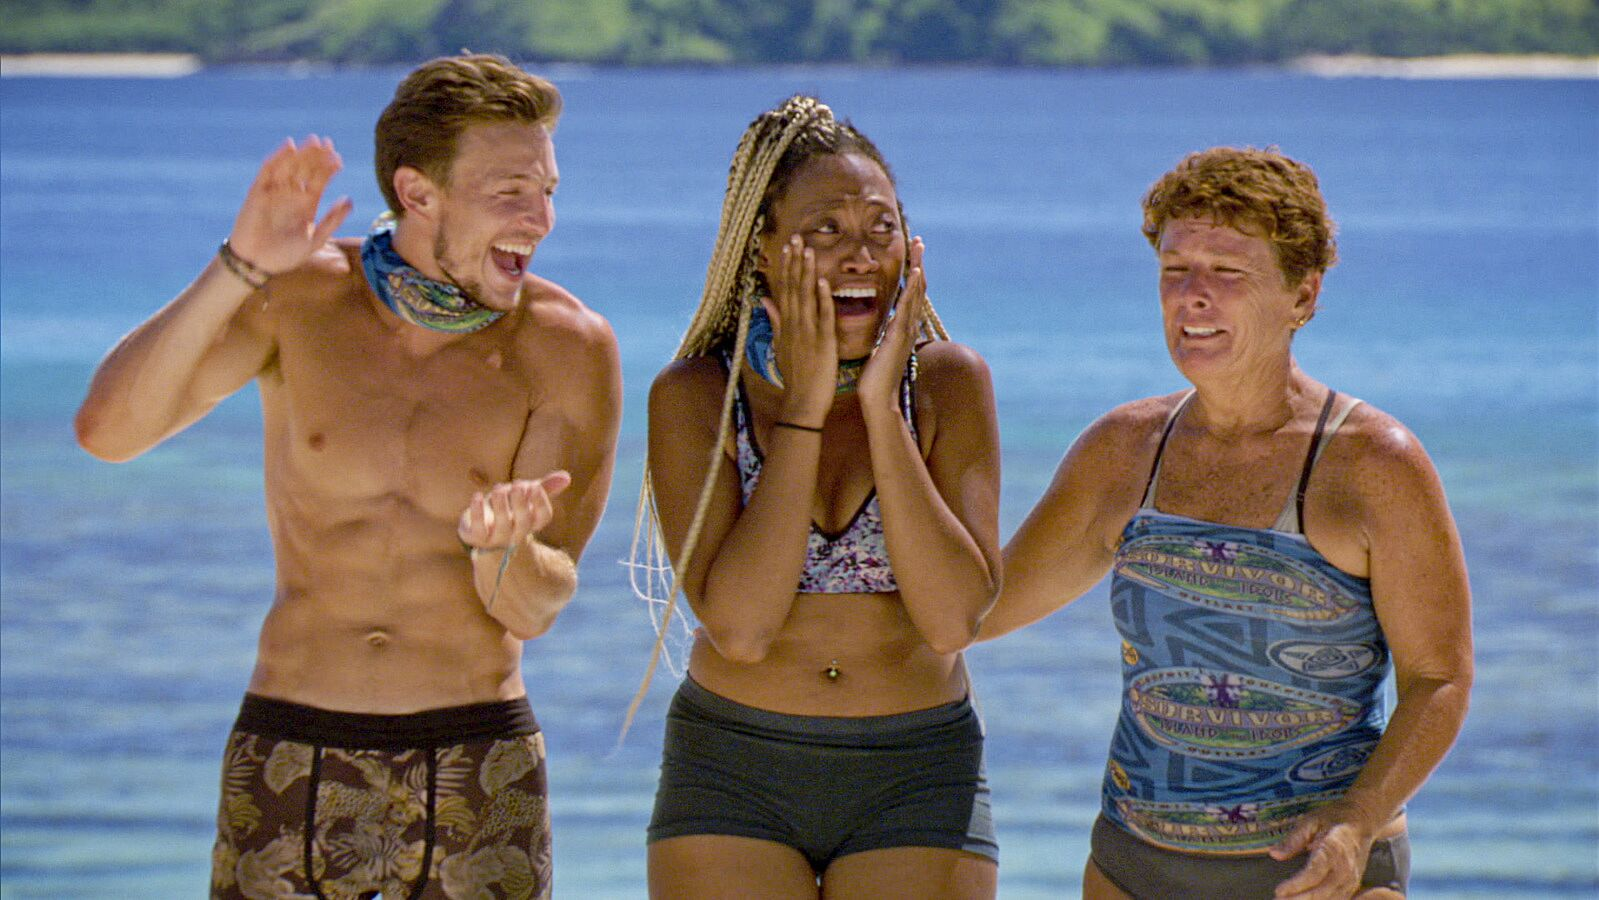 Dean, Lauren and Janet reacting to the news of the Loved One's Visit. who got voted off survivor tonight?